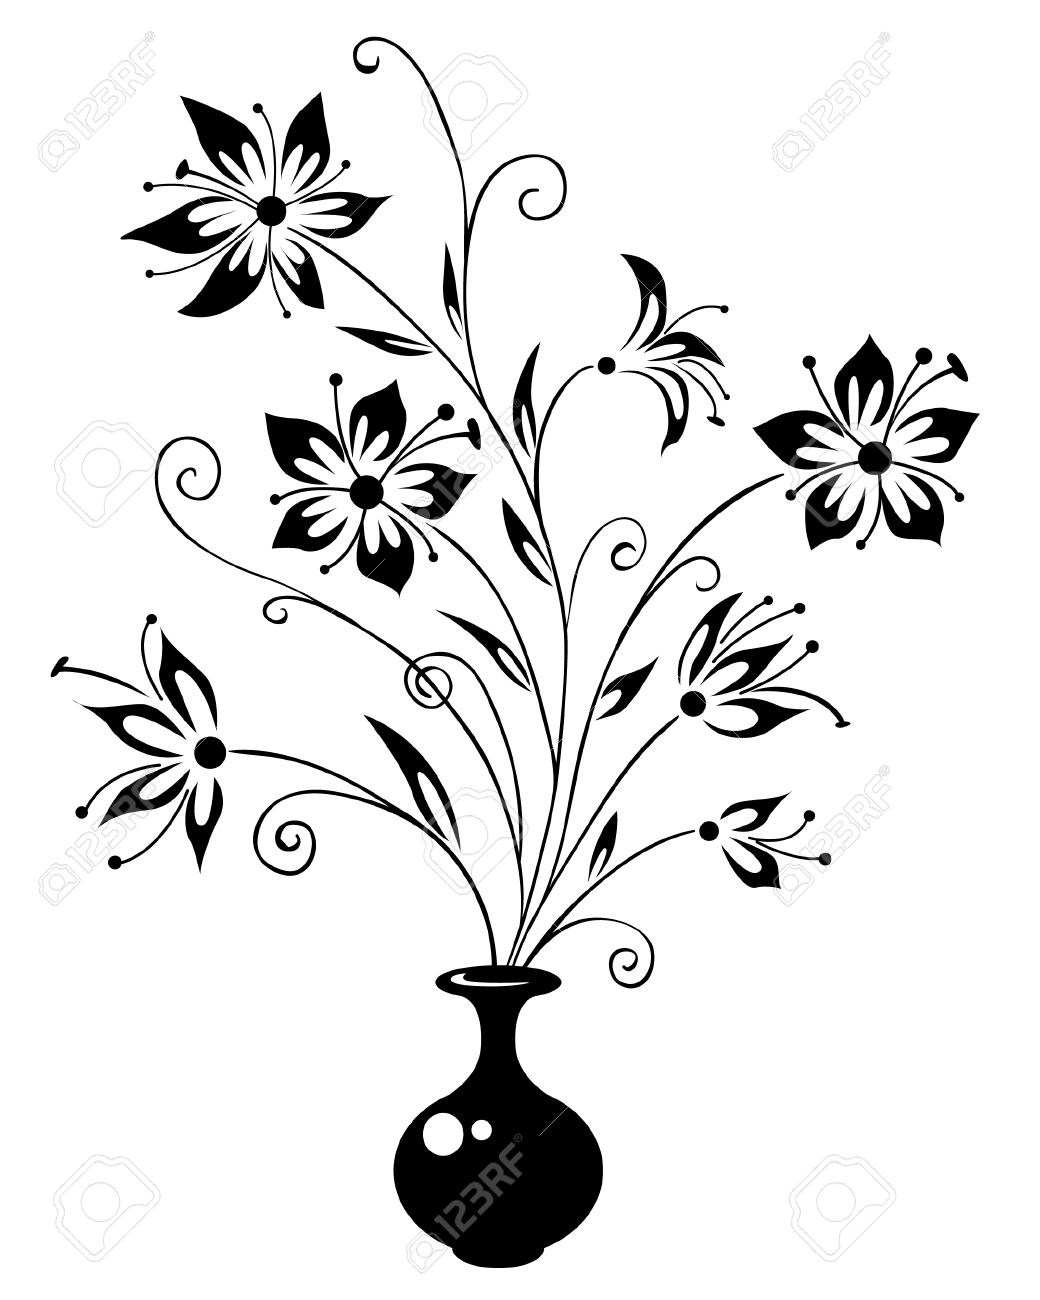 1040x1300 Easy To Draw Flowers. Elegant How To Draw Flowers Screenshot